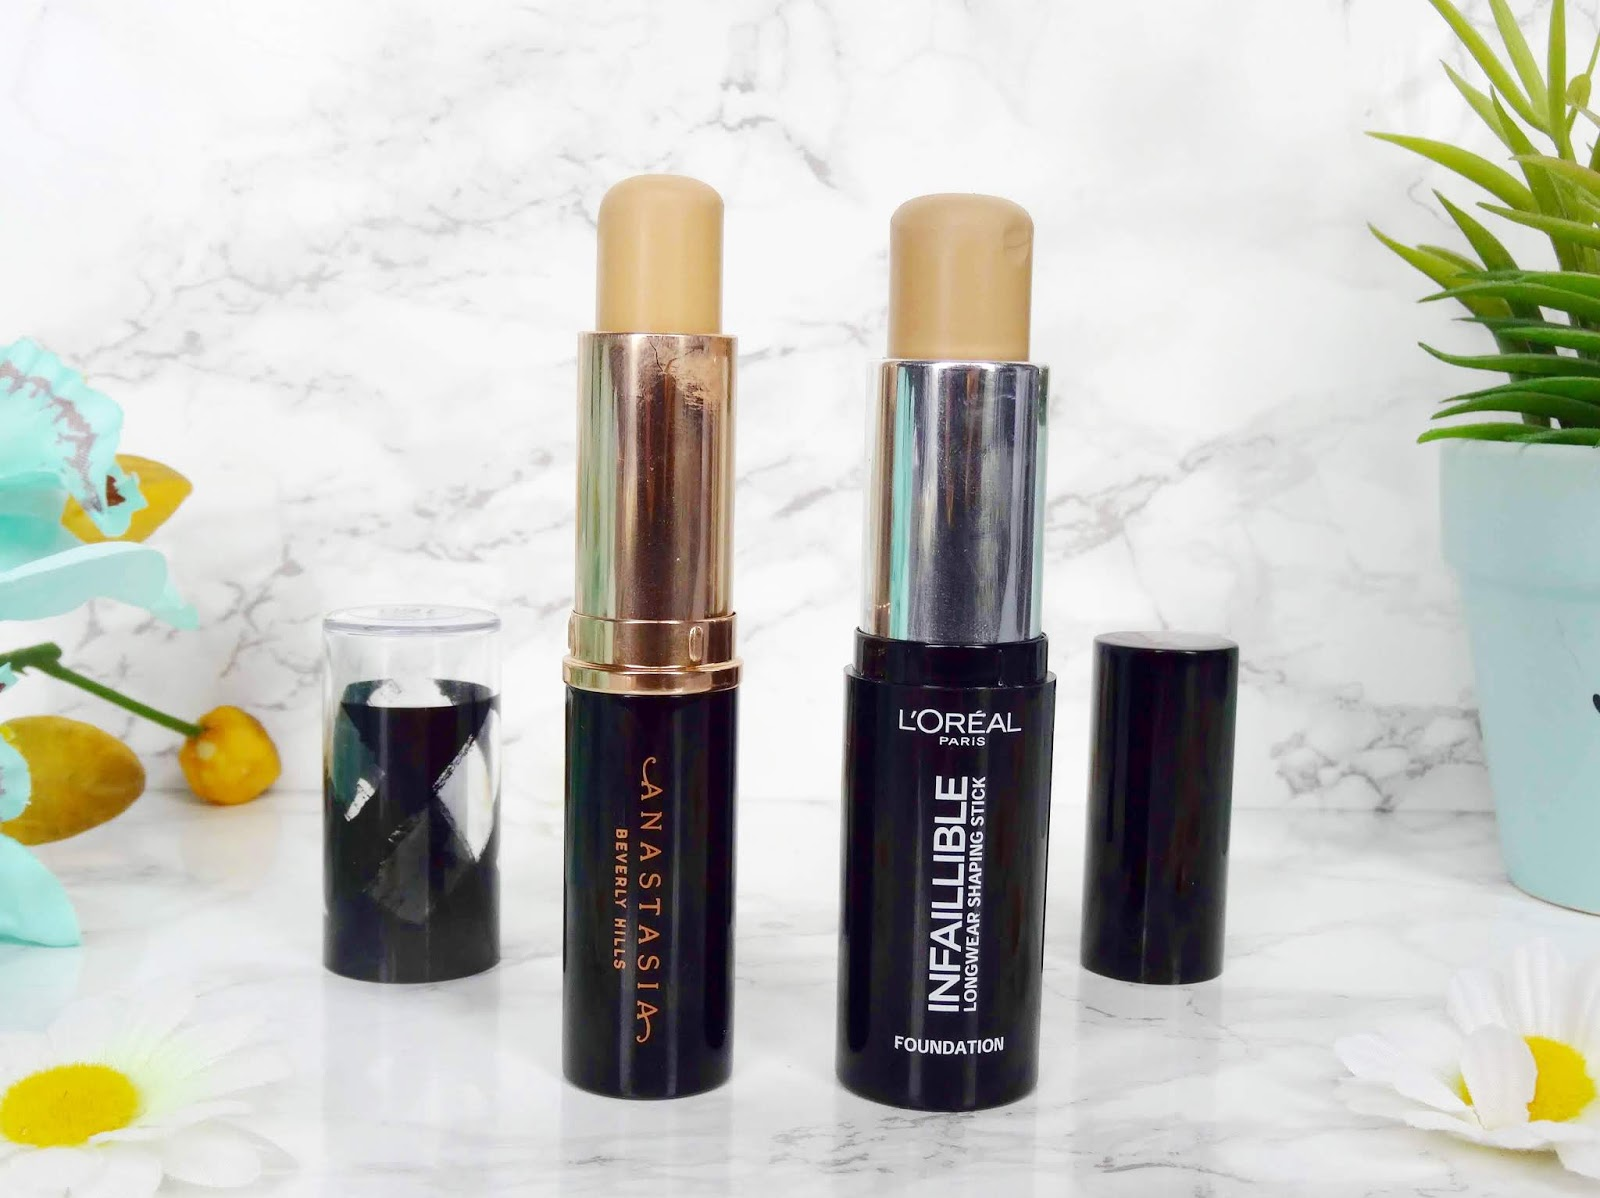 Two Foundations I Use When Tanning